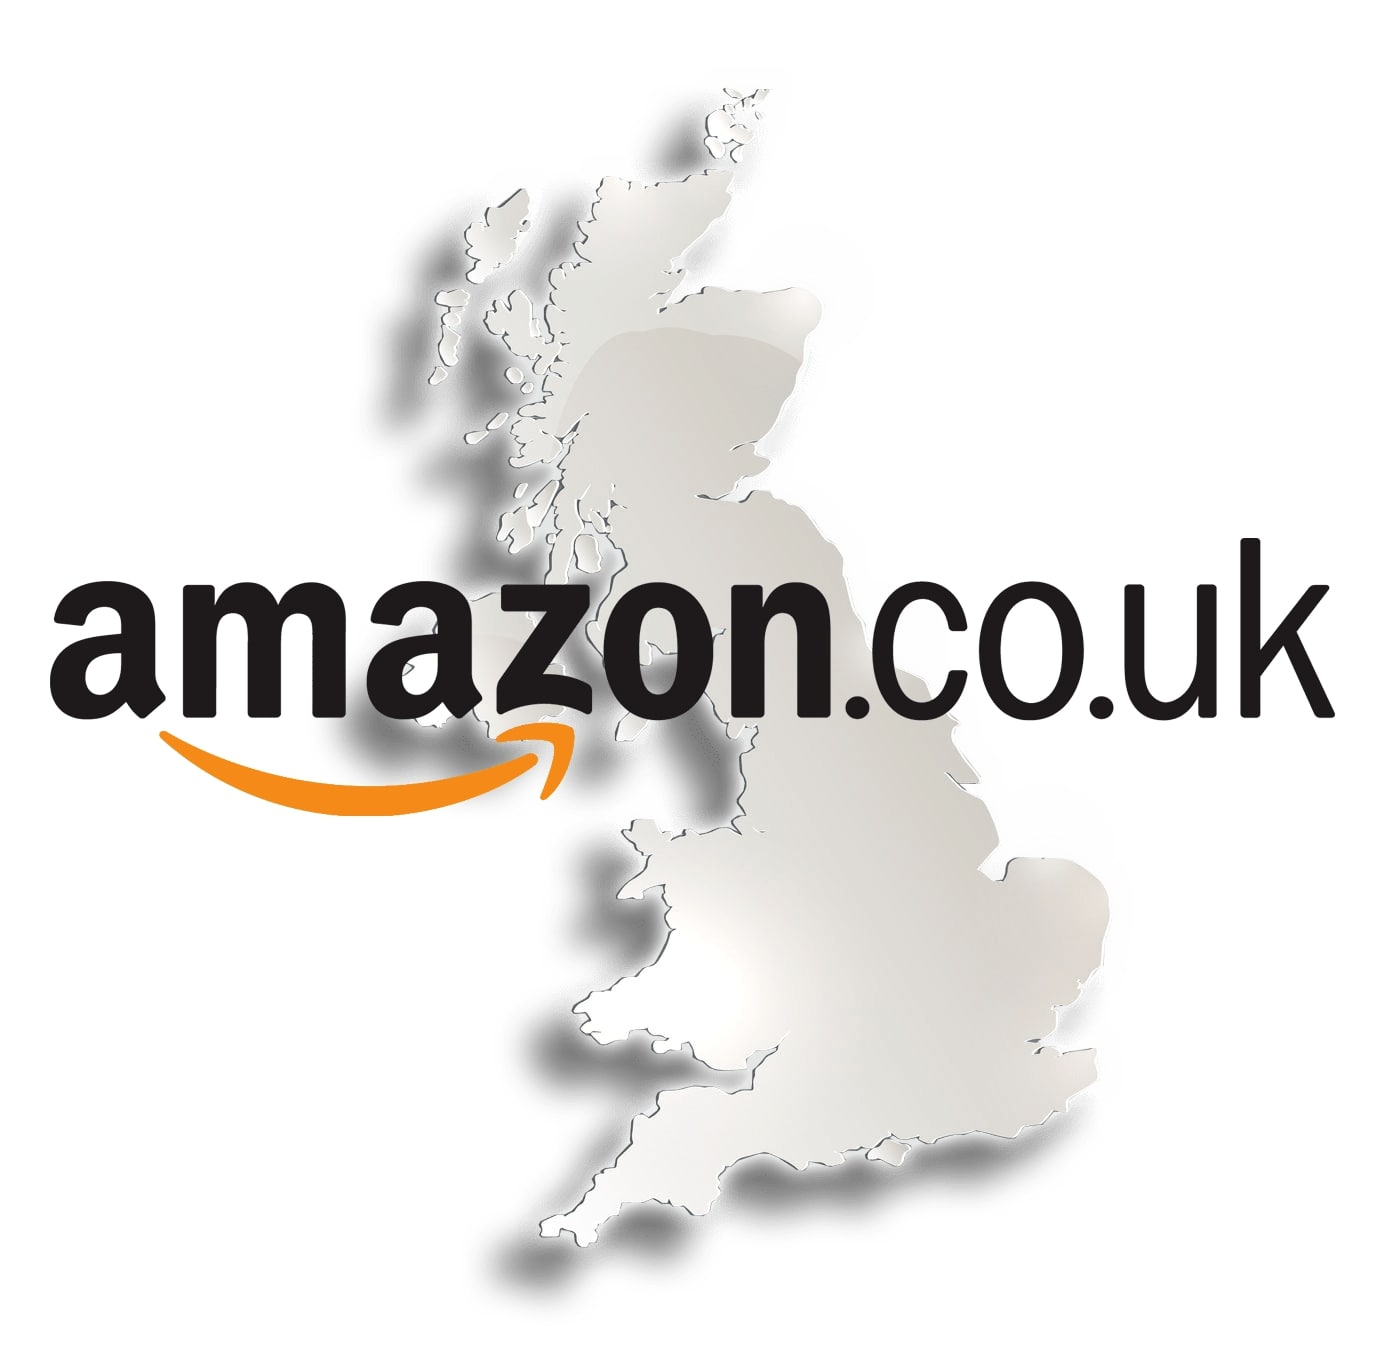 amazon.co_.uk-freigestellt-min